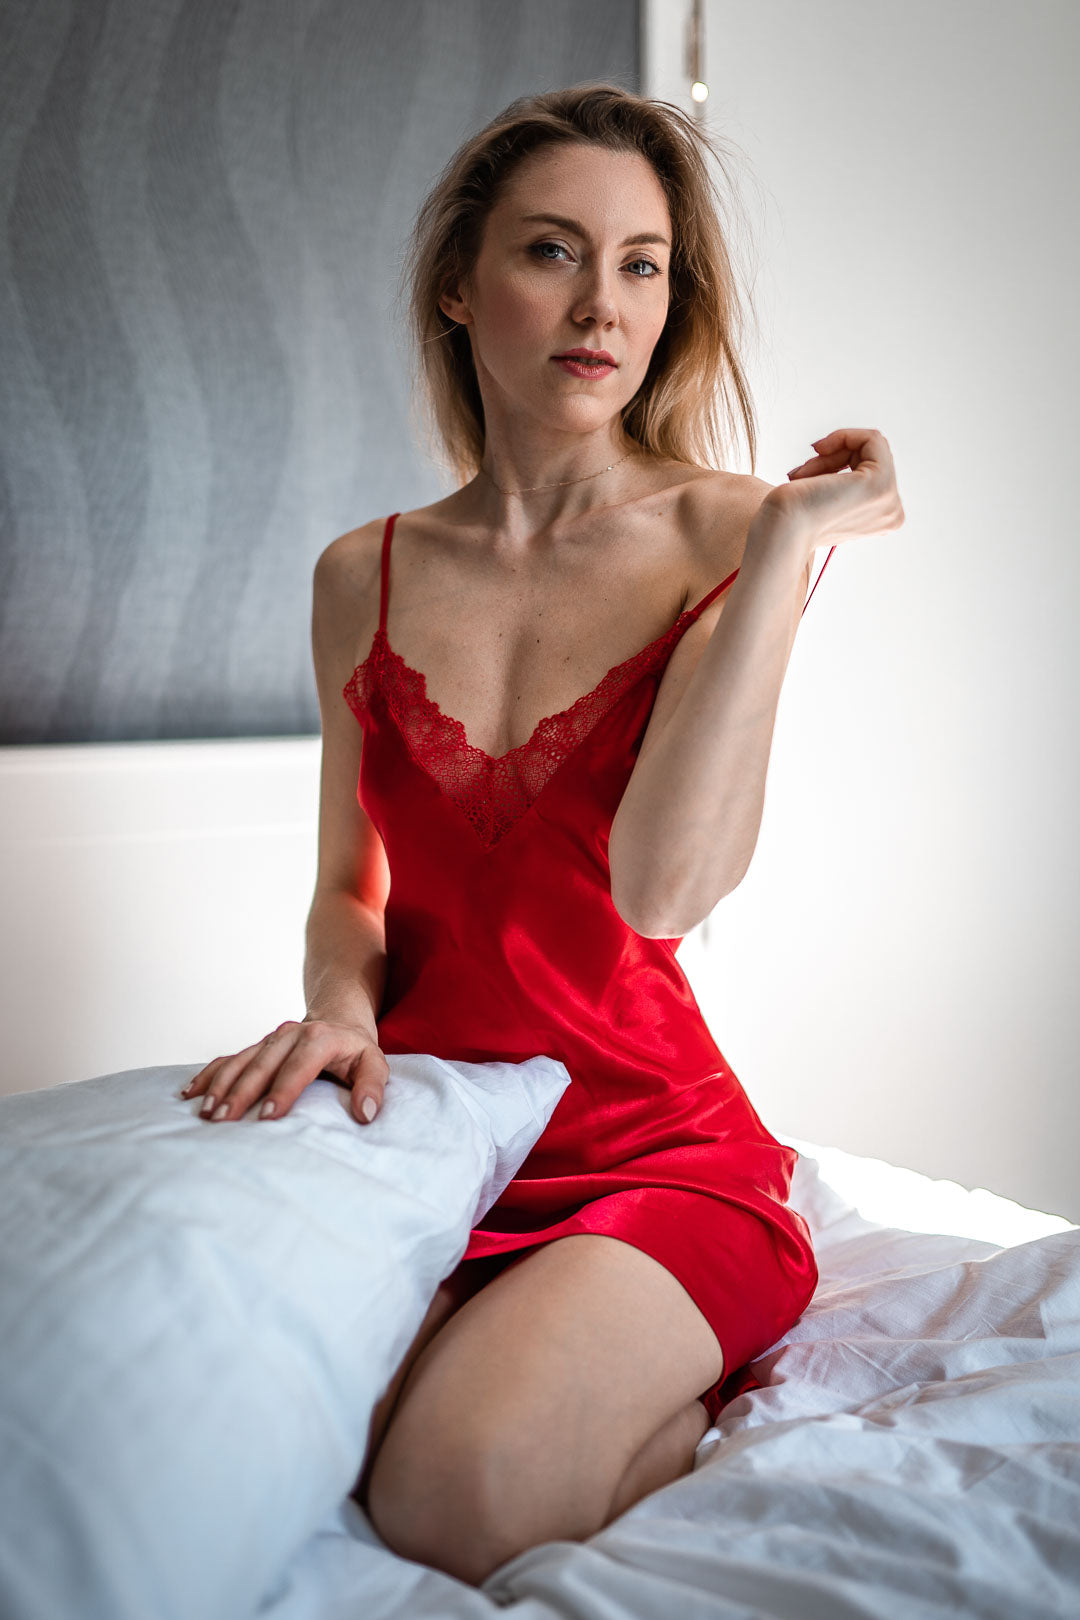 Woman in bed in red nightie